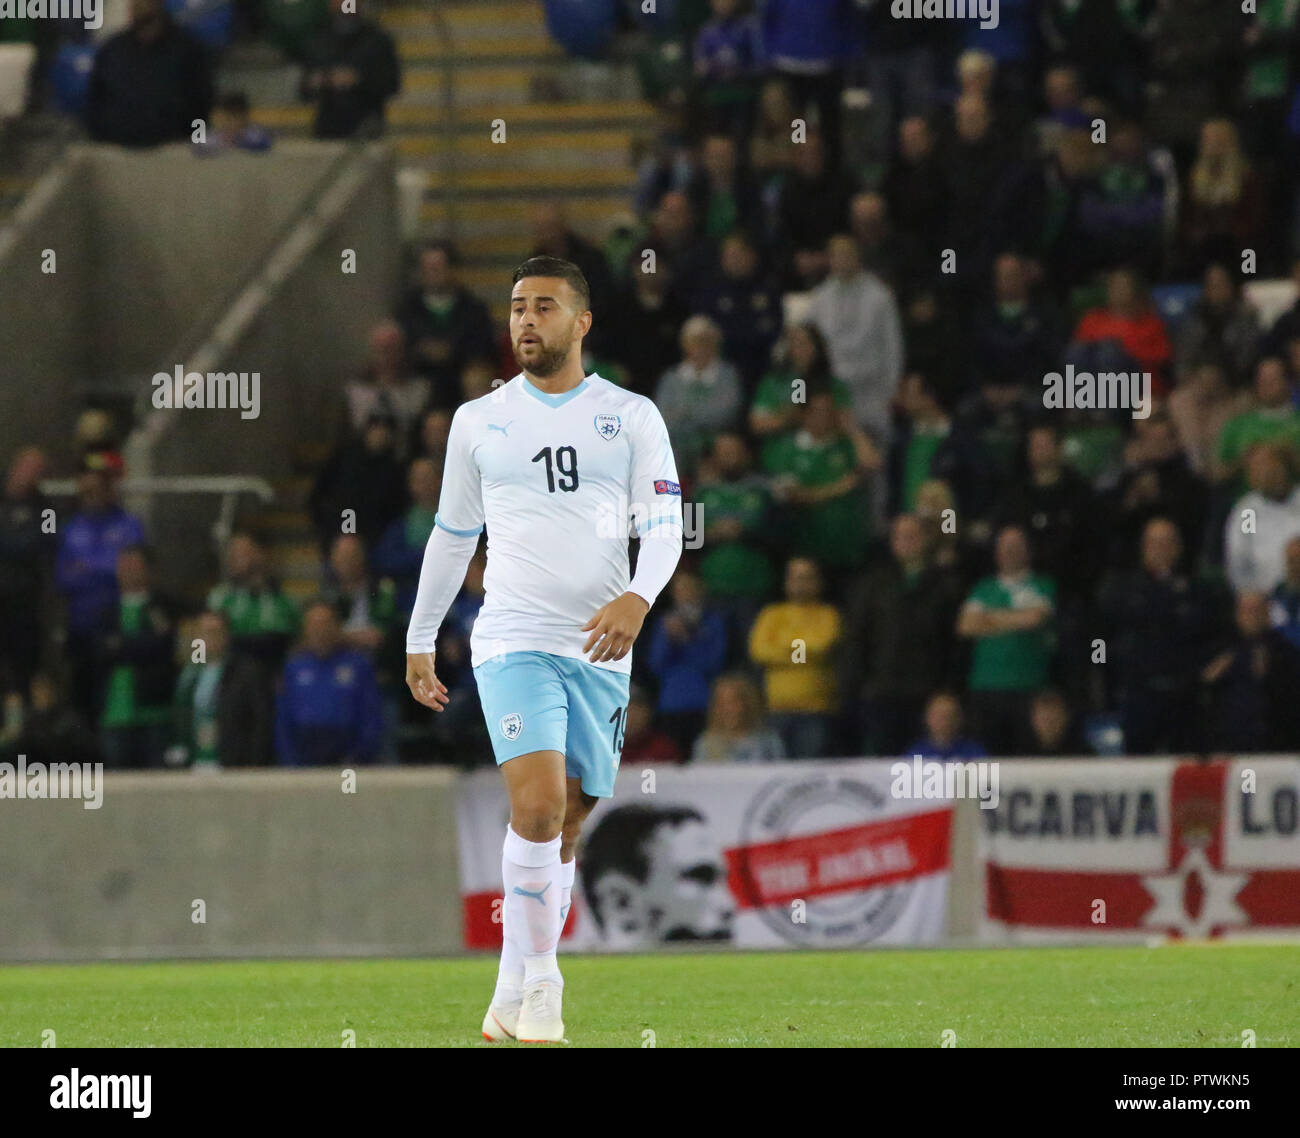 https://c8.alamy.com/comp/PTWKN5/national-football-stadium-at-windsor-park-belfast-11-september-2018-international-football-friendly-northern-ireland-3-israel-0-dia-seba-israel-19-PTWKN5.jpg